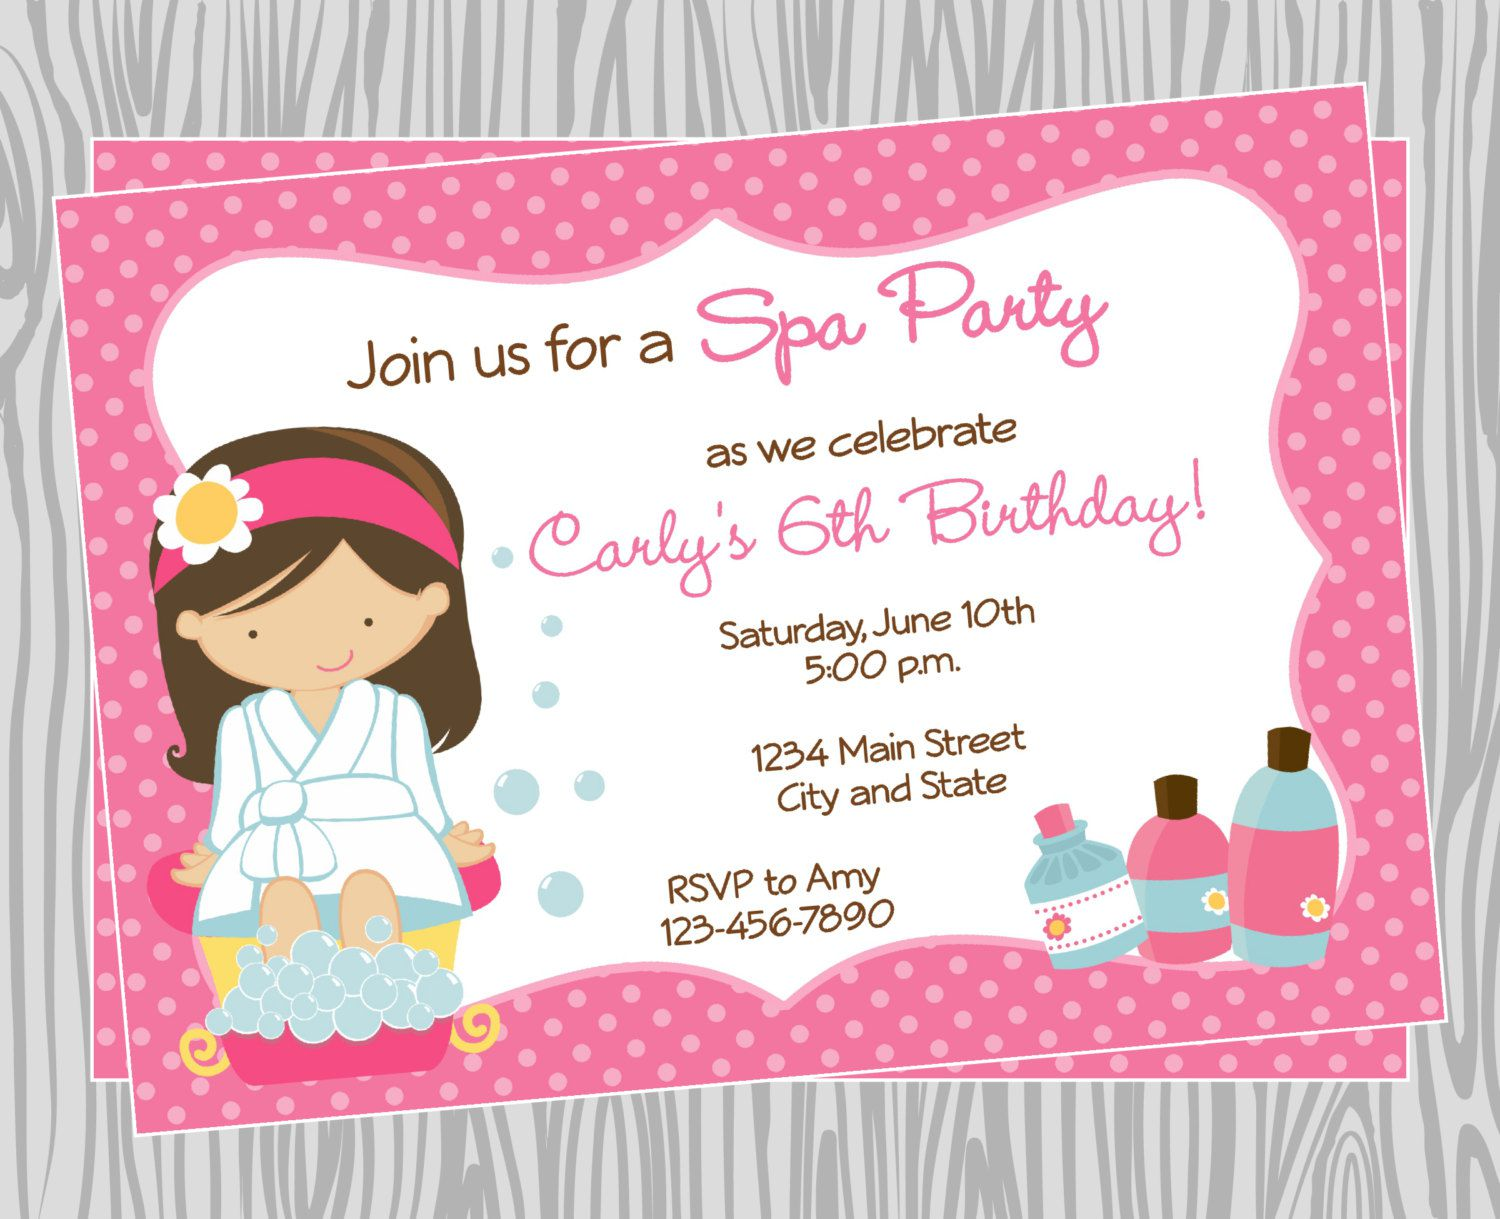 Spa Birthday Party Ideas For 11 Year Olds